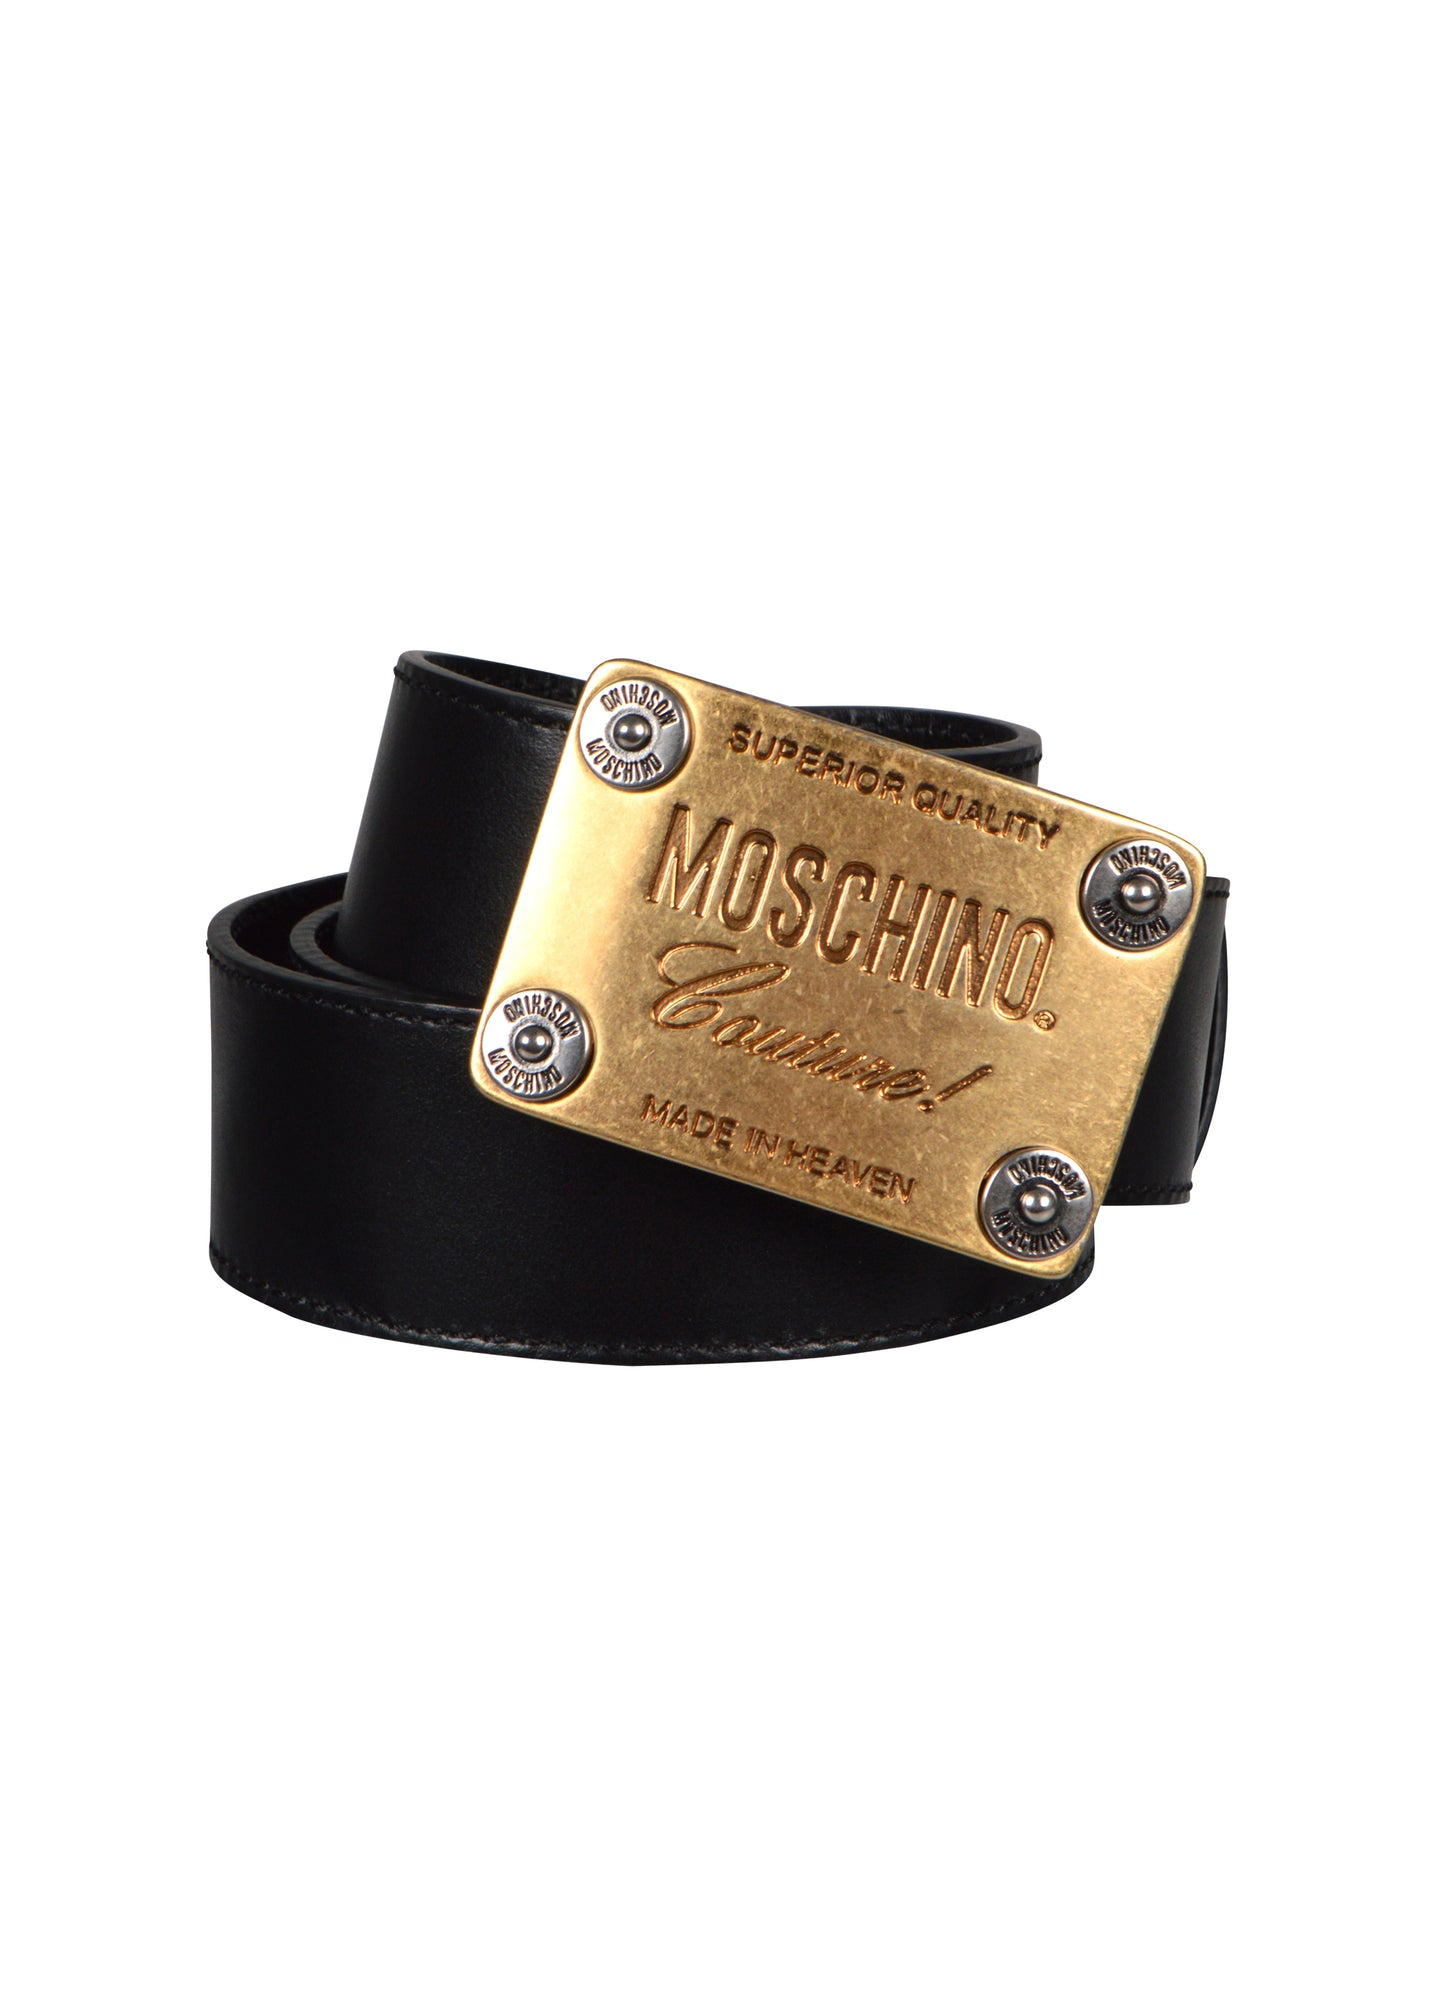 Moschino - Gold Plaque Buckle Moschino Couture Logo Leather Belt - A8011 - 099173 -Black